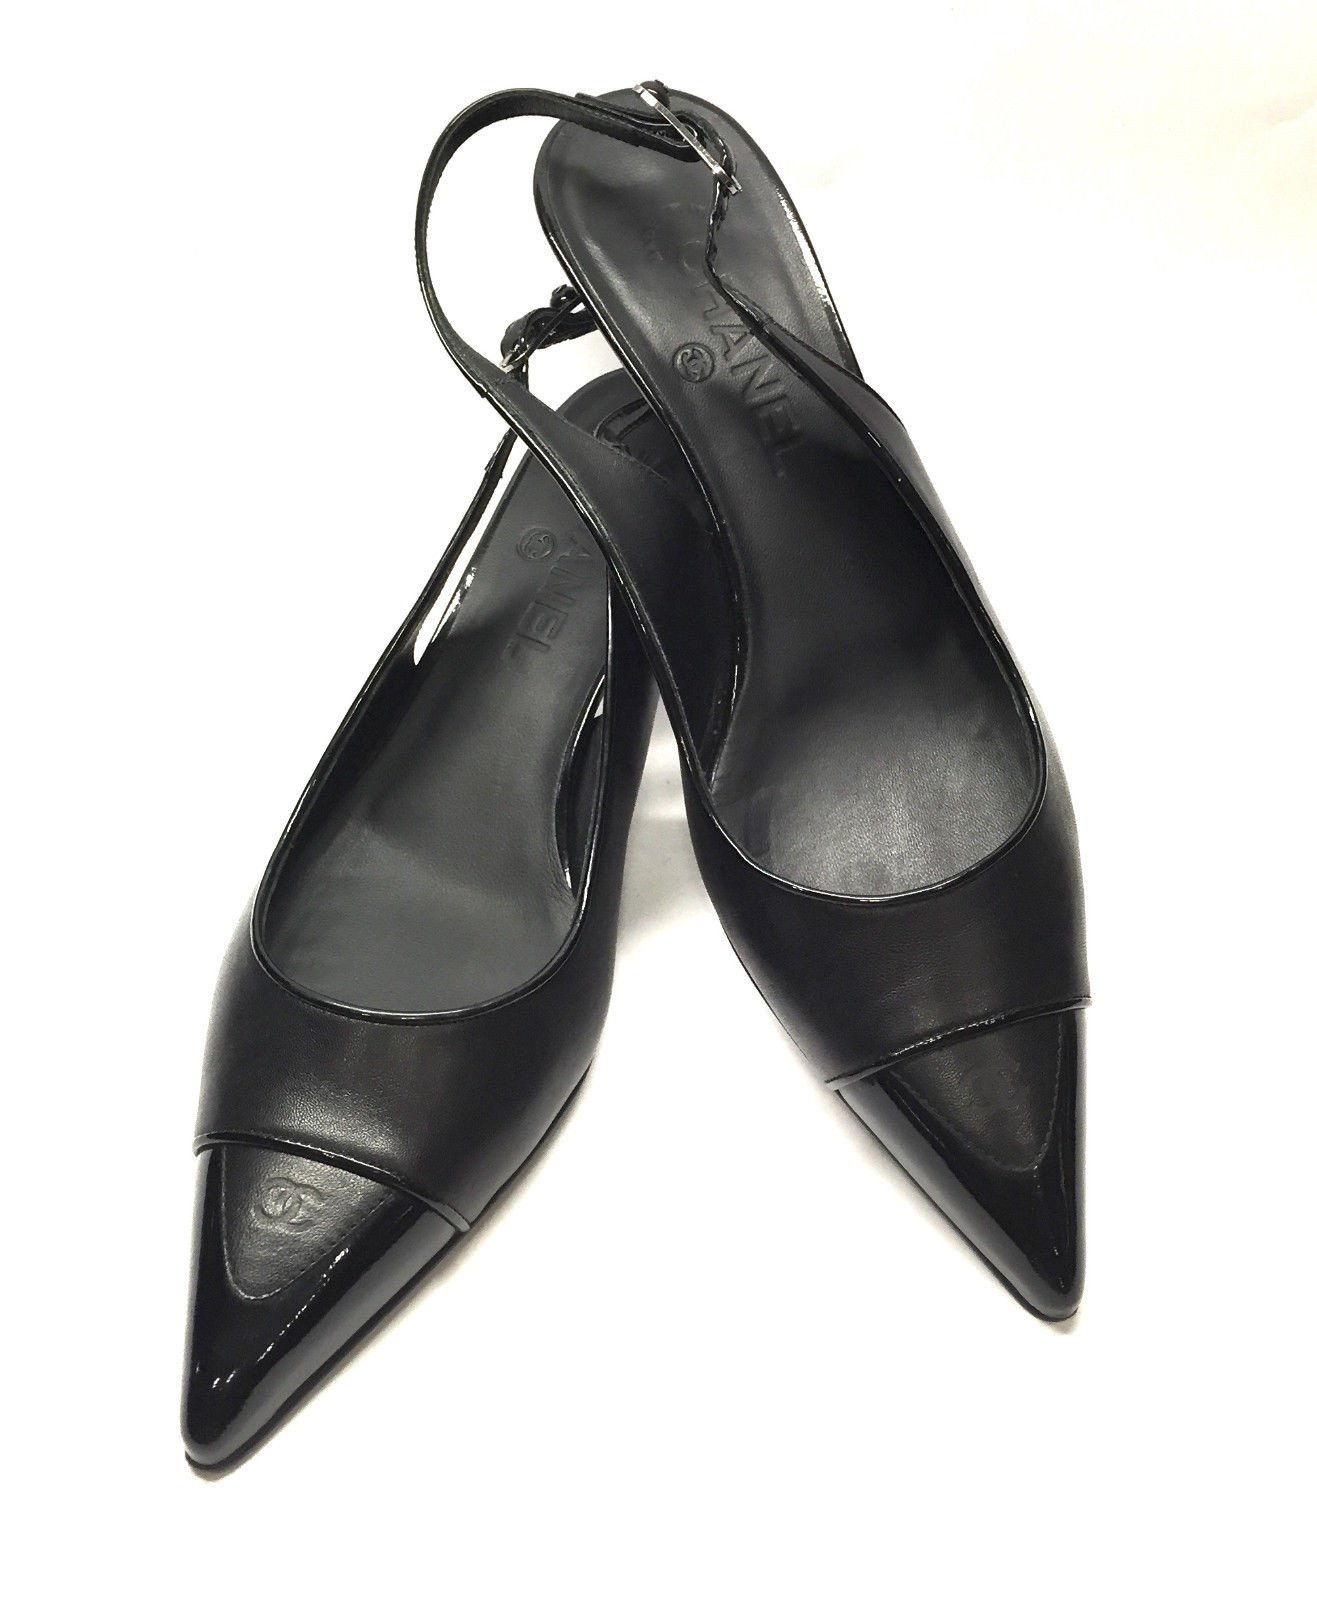 ac87485b8b8f CHANEL Black Leather Patent Logo Pointed Toe Low-Heel Slingback Pumps Shoes  Size  39.5